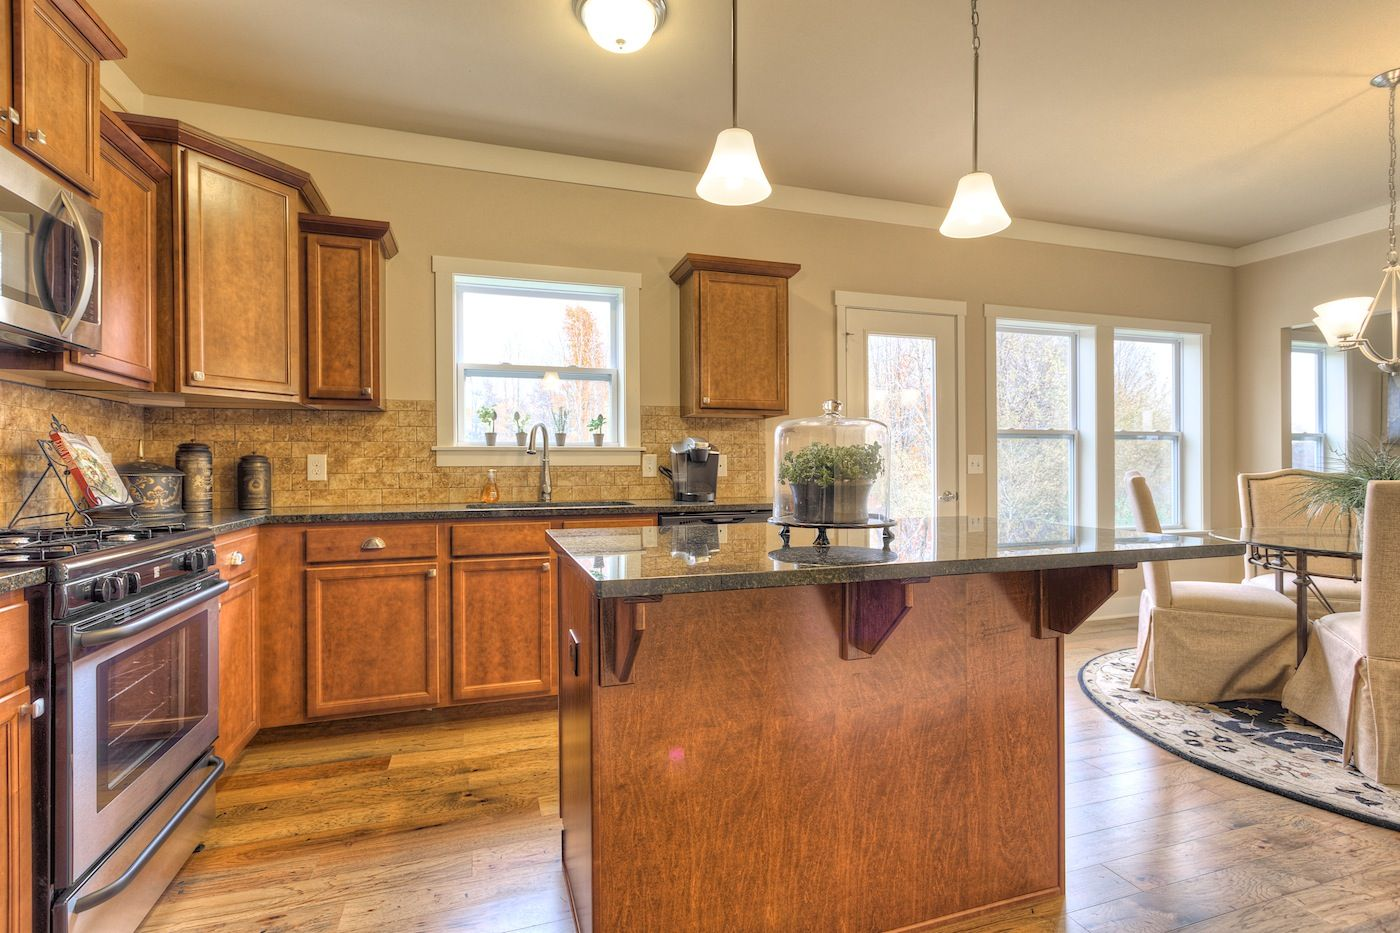 Kitchen featured in the Traditions 2200 V8.0b By Allen Edwin Homes in Flint, MI